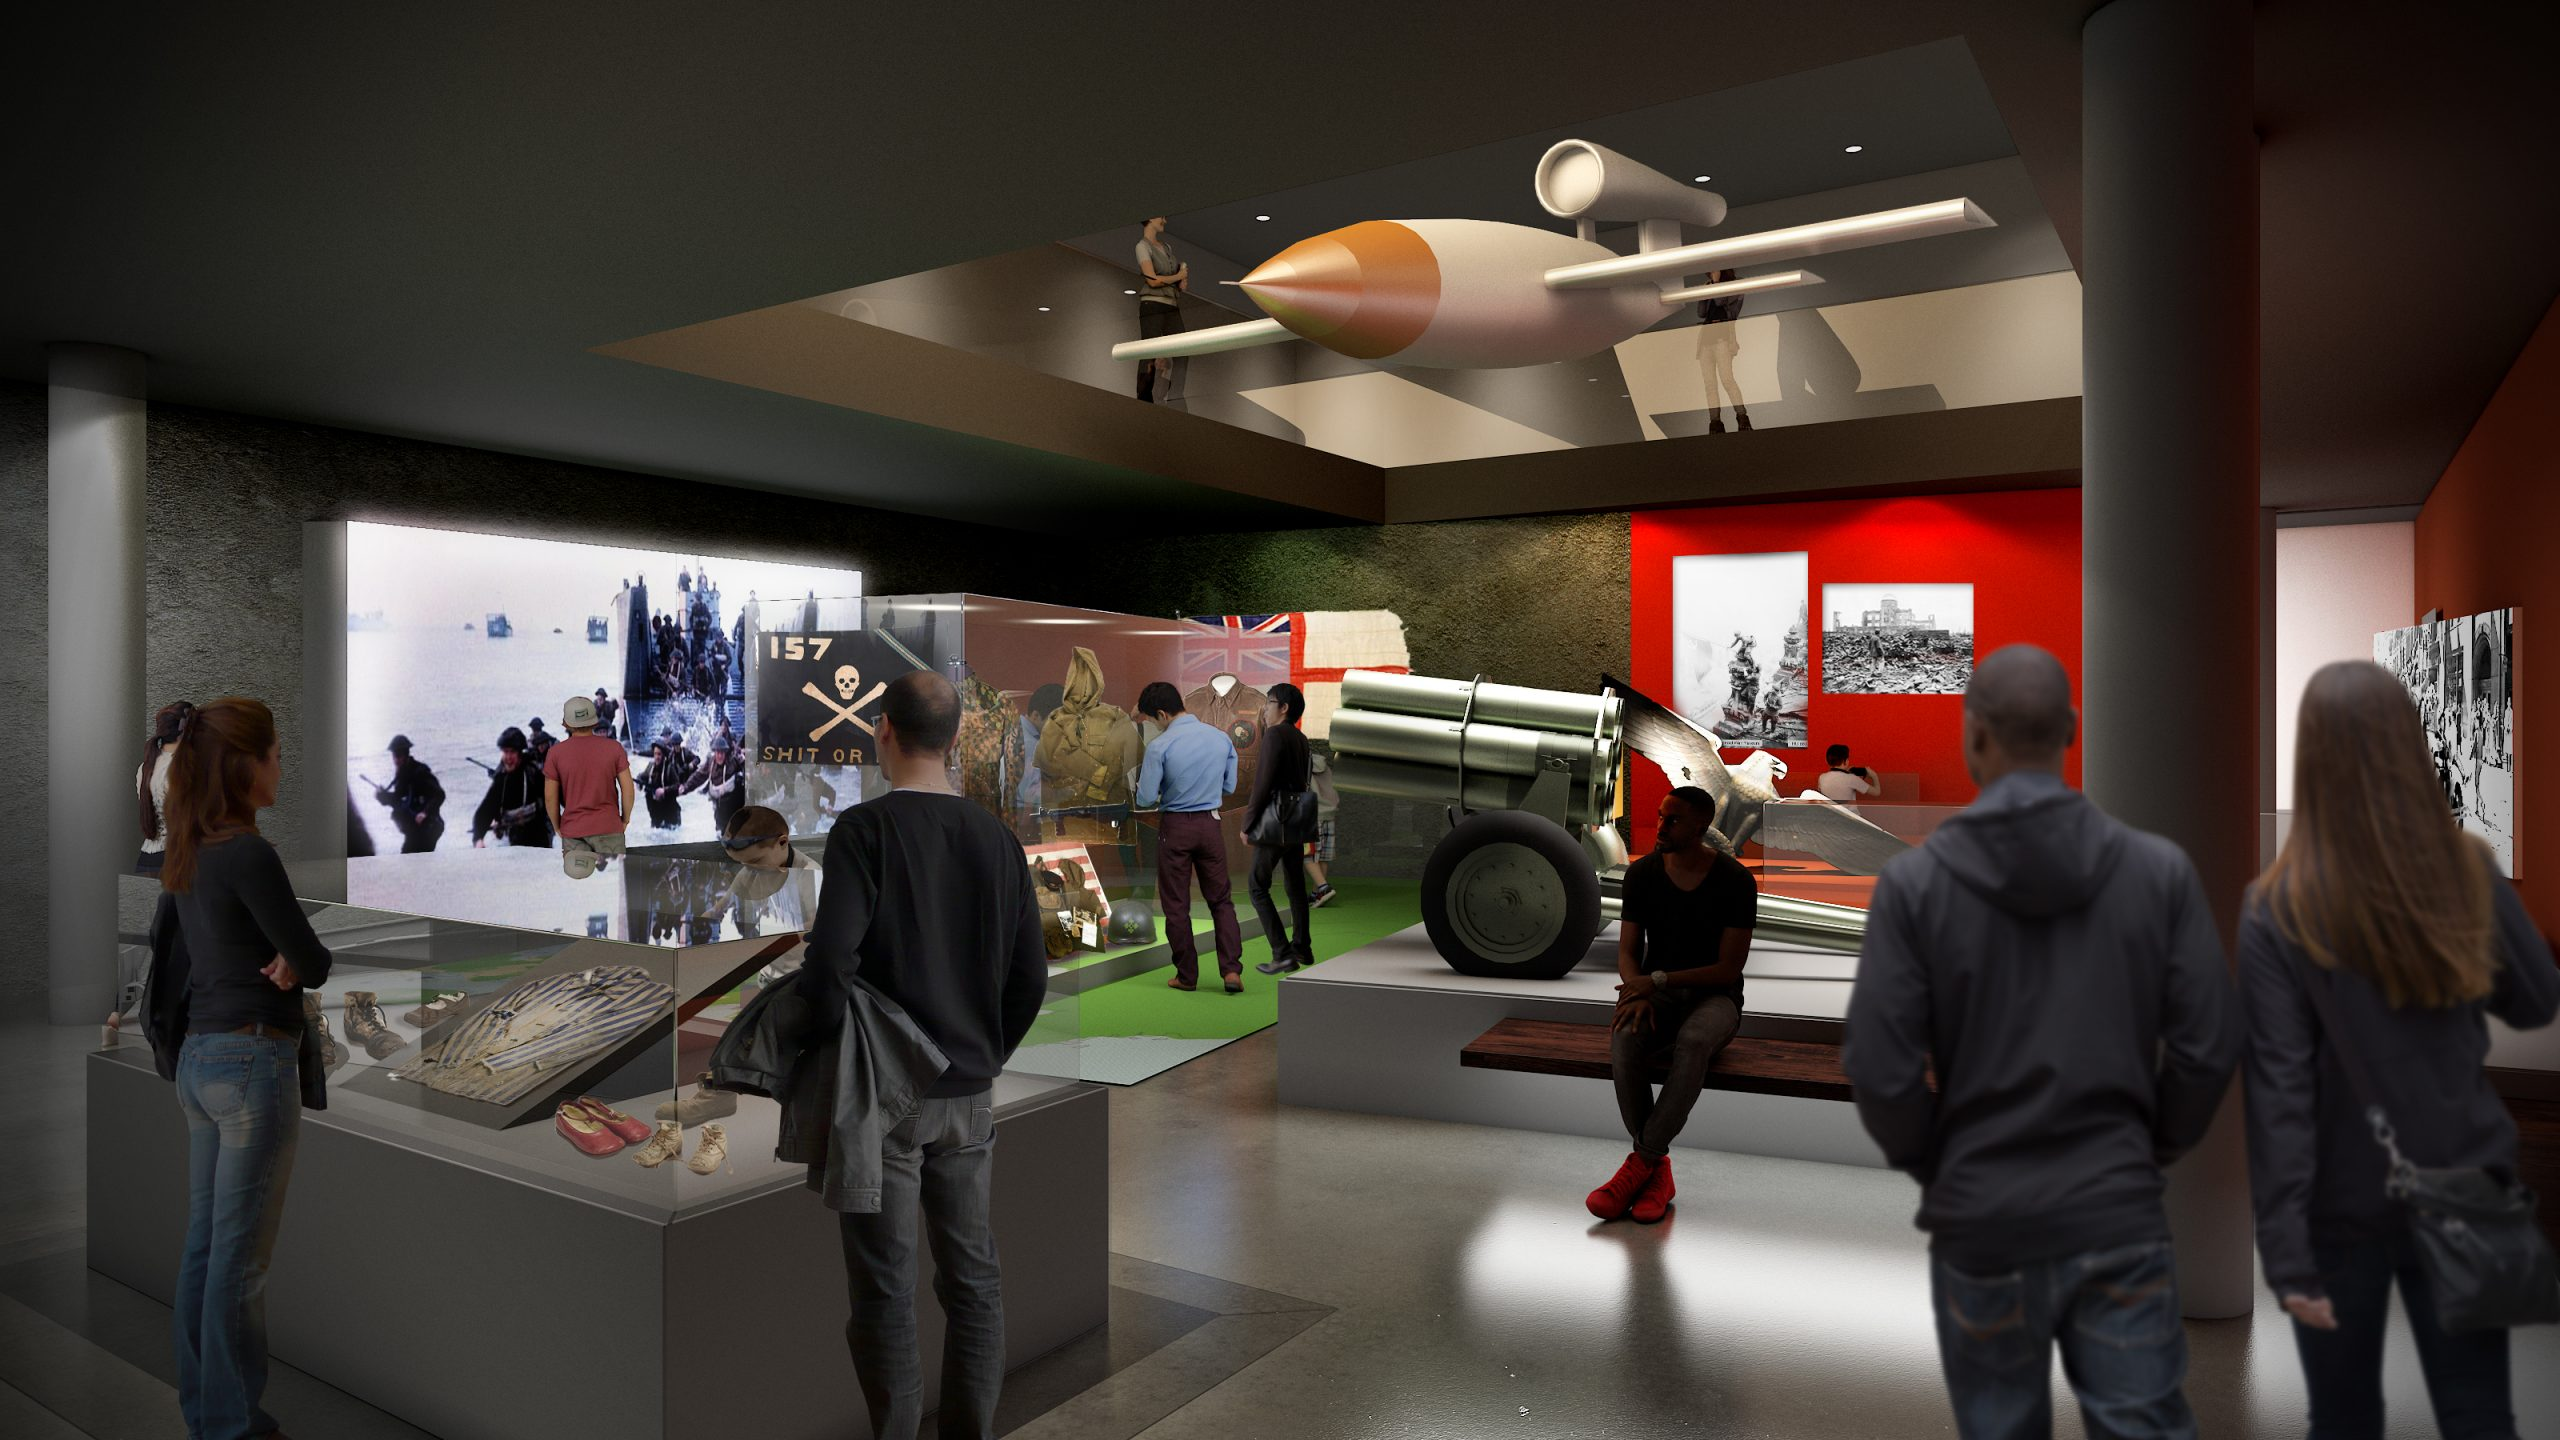 A 783kg V-1 flying bomb will be suspended between the two new galleries, presenting a striking symbol of how the Holocaust and the Second World War are interconnected